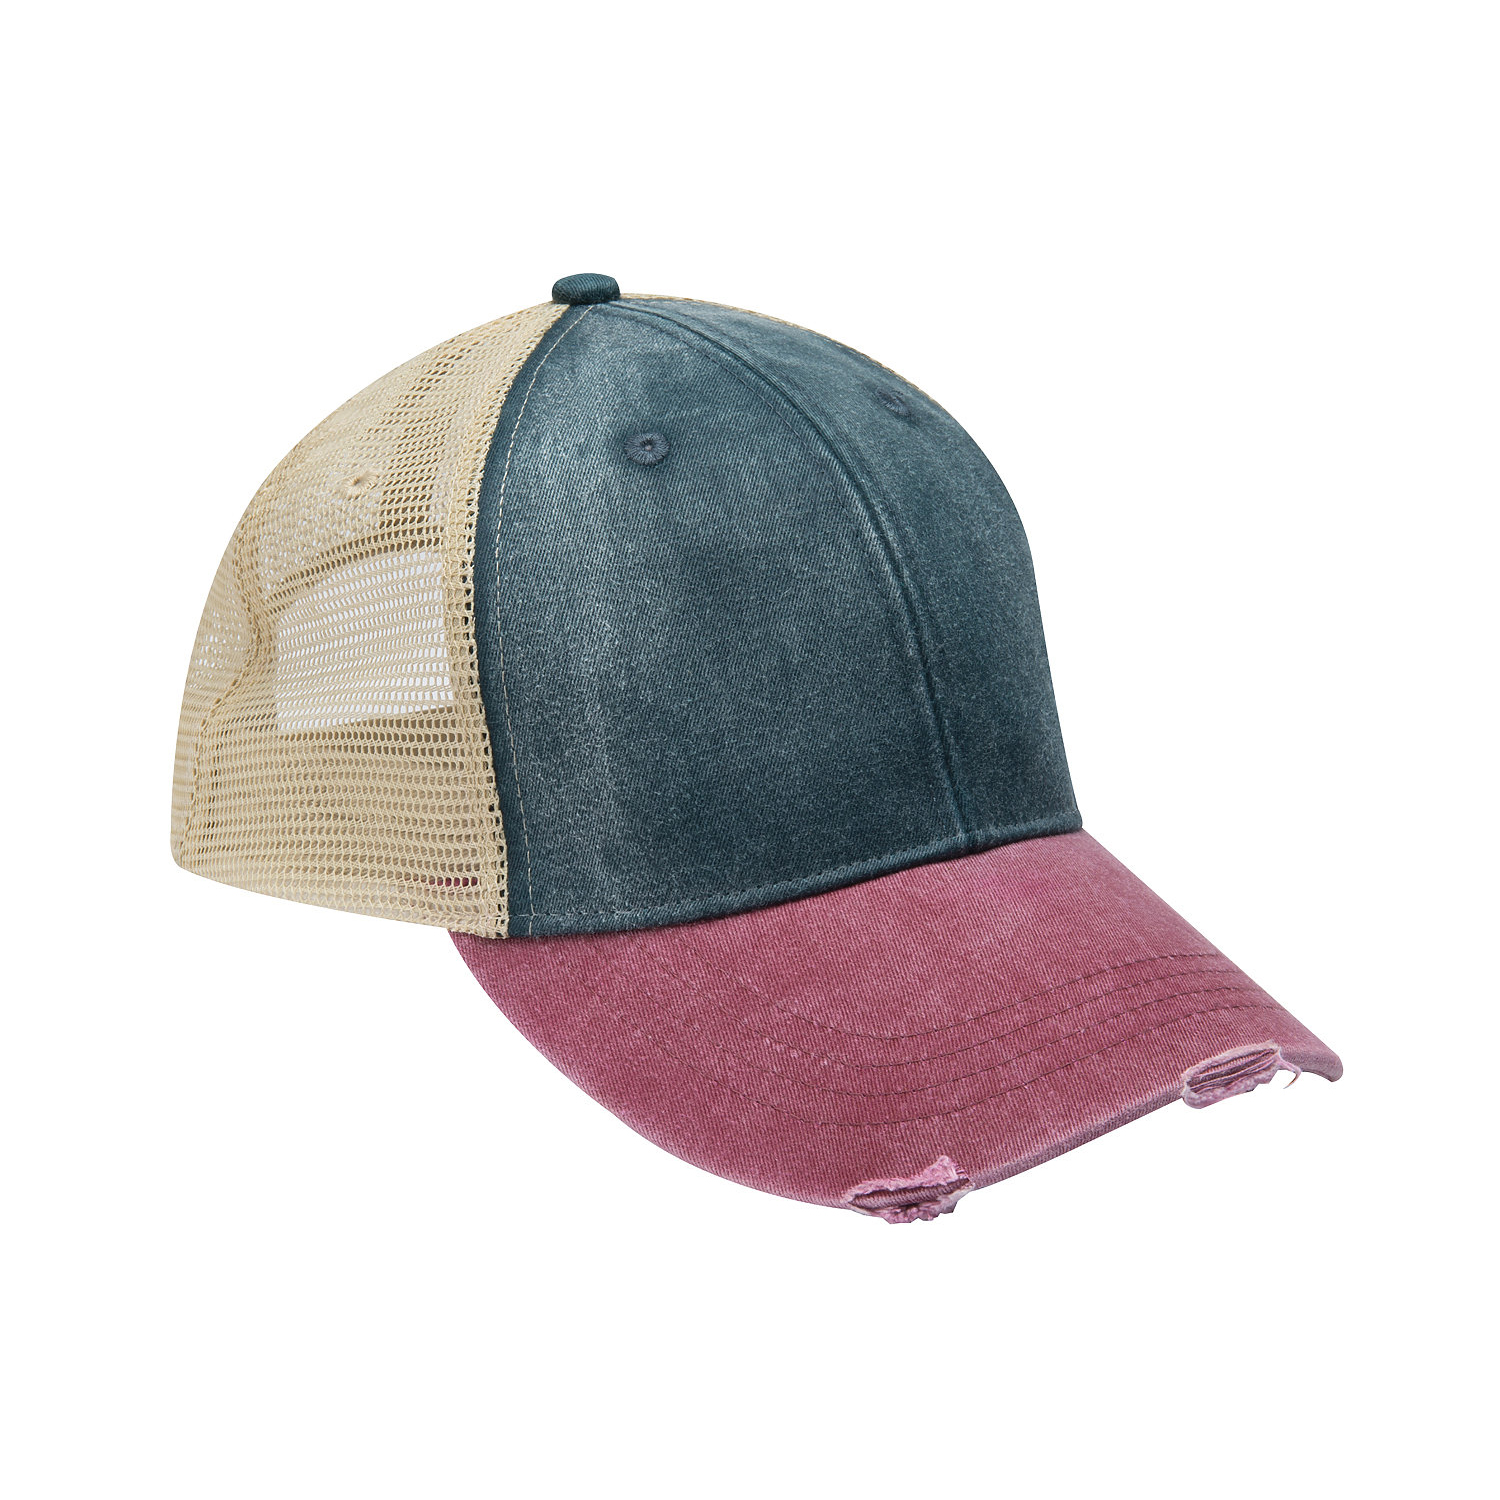 ce9b9ebeb Adams OL102 - 6-Panel Pigment-Dyed Distressed Trucker Cap | Wordans